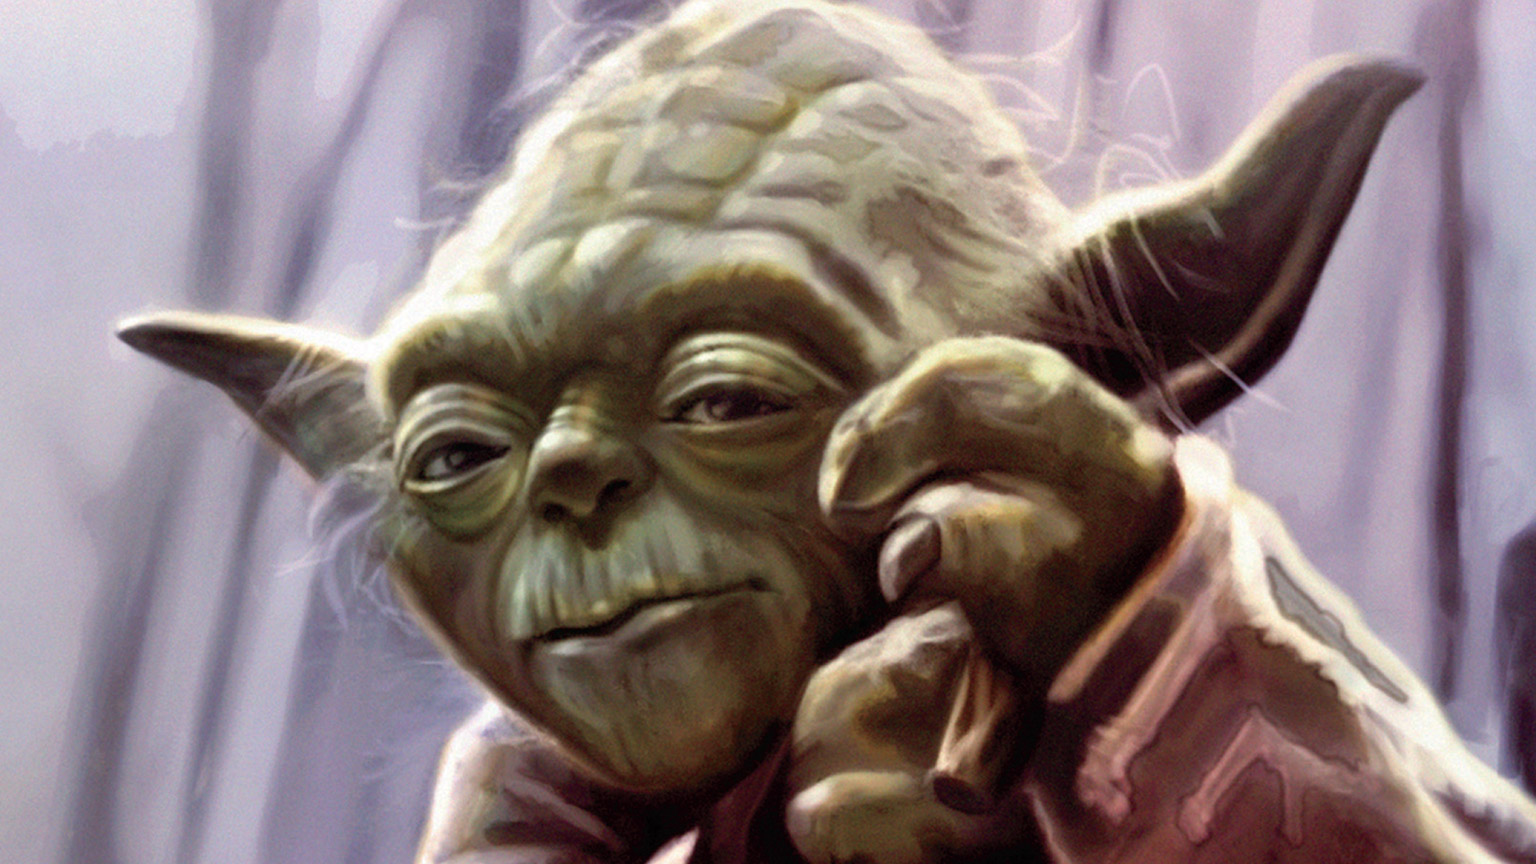 A painting of Yoda from The Skywalker Saga book.